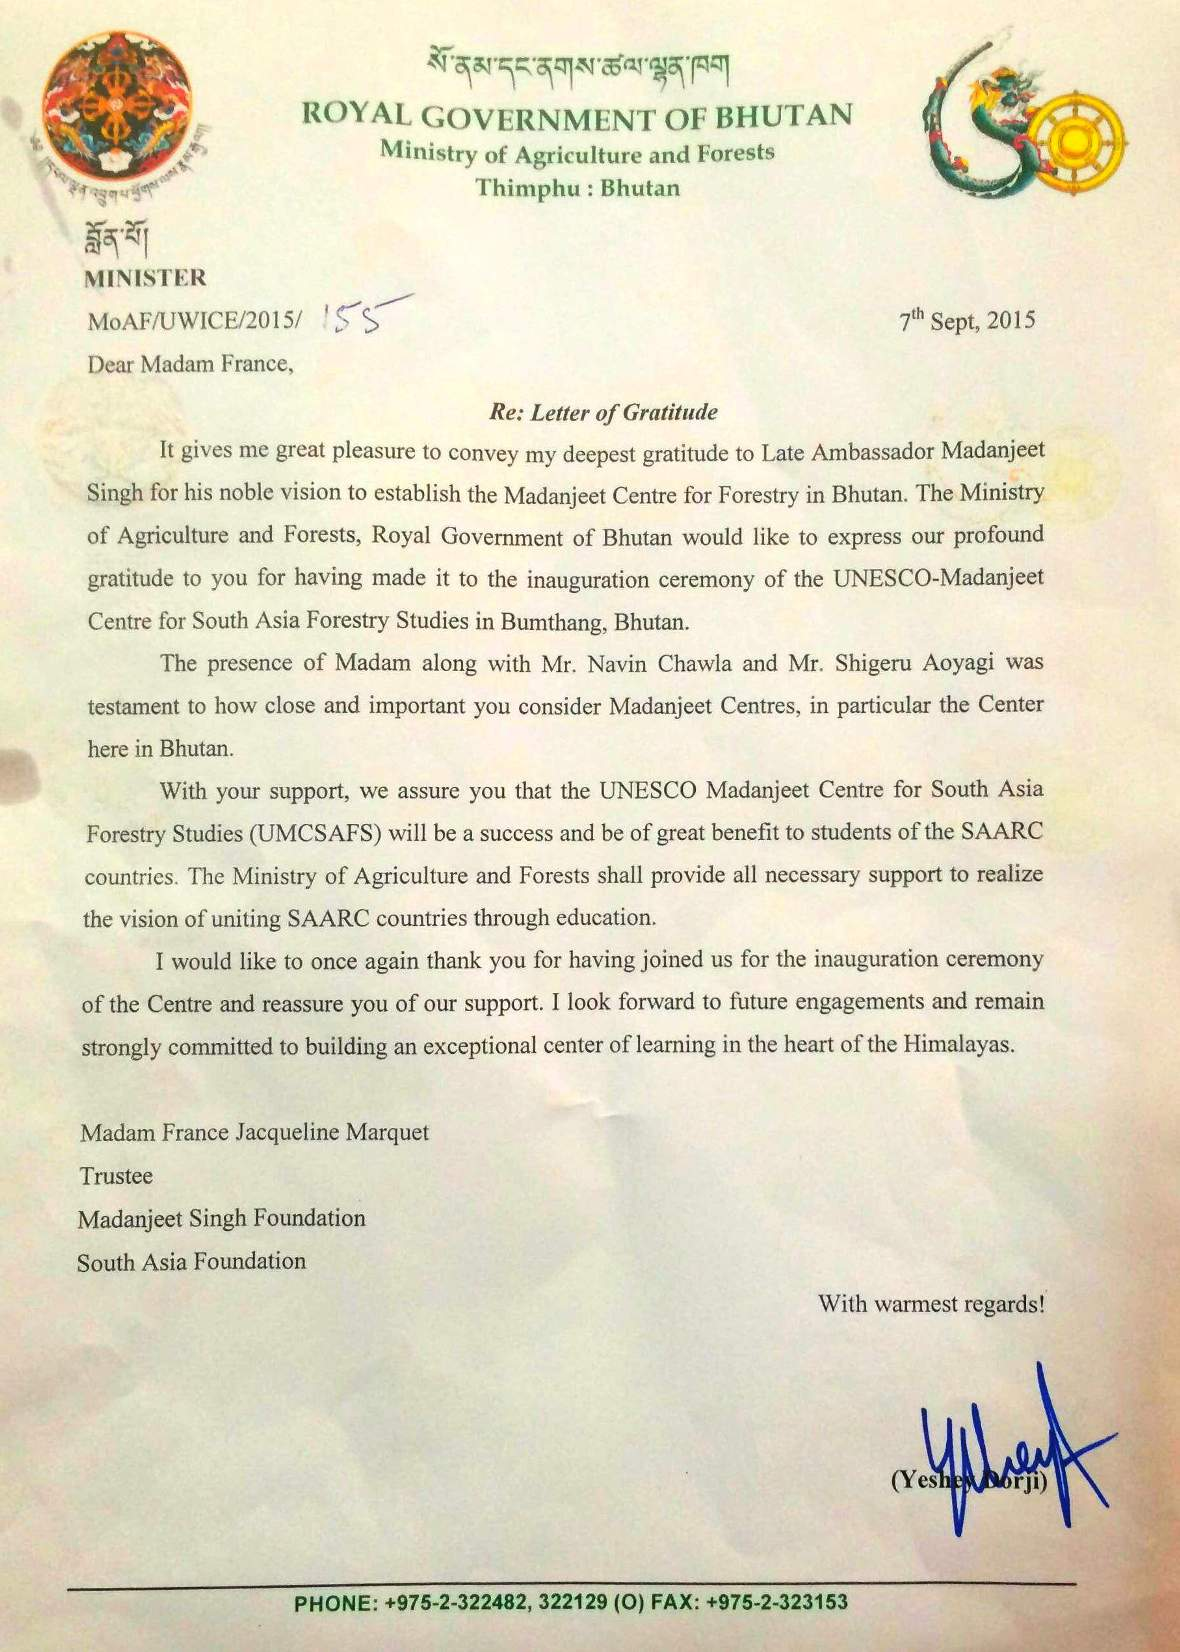 Letter of Gratitude from Lyonpo Yeshi to France Marquet Trustee South Asia Foundation and Madanjeet Singh Foundation